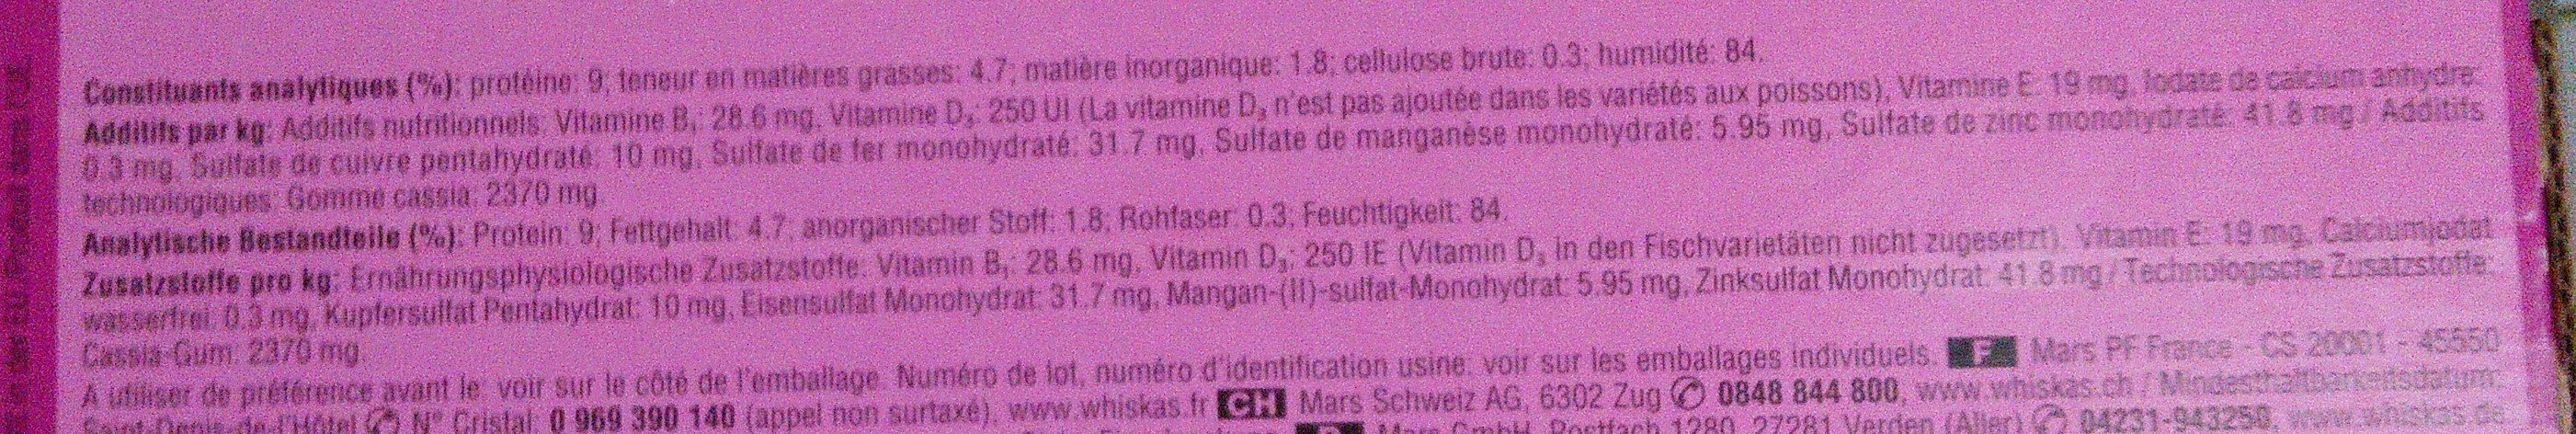 maxi pack selection mixte en gelée - Nutrition facts